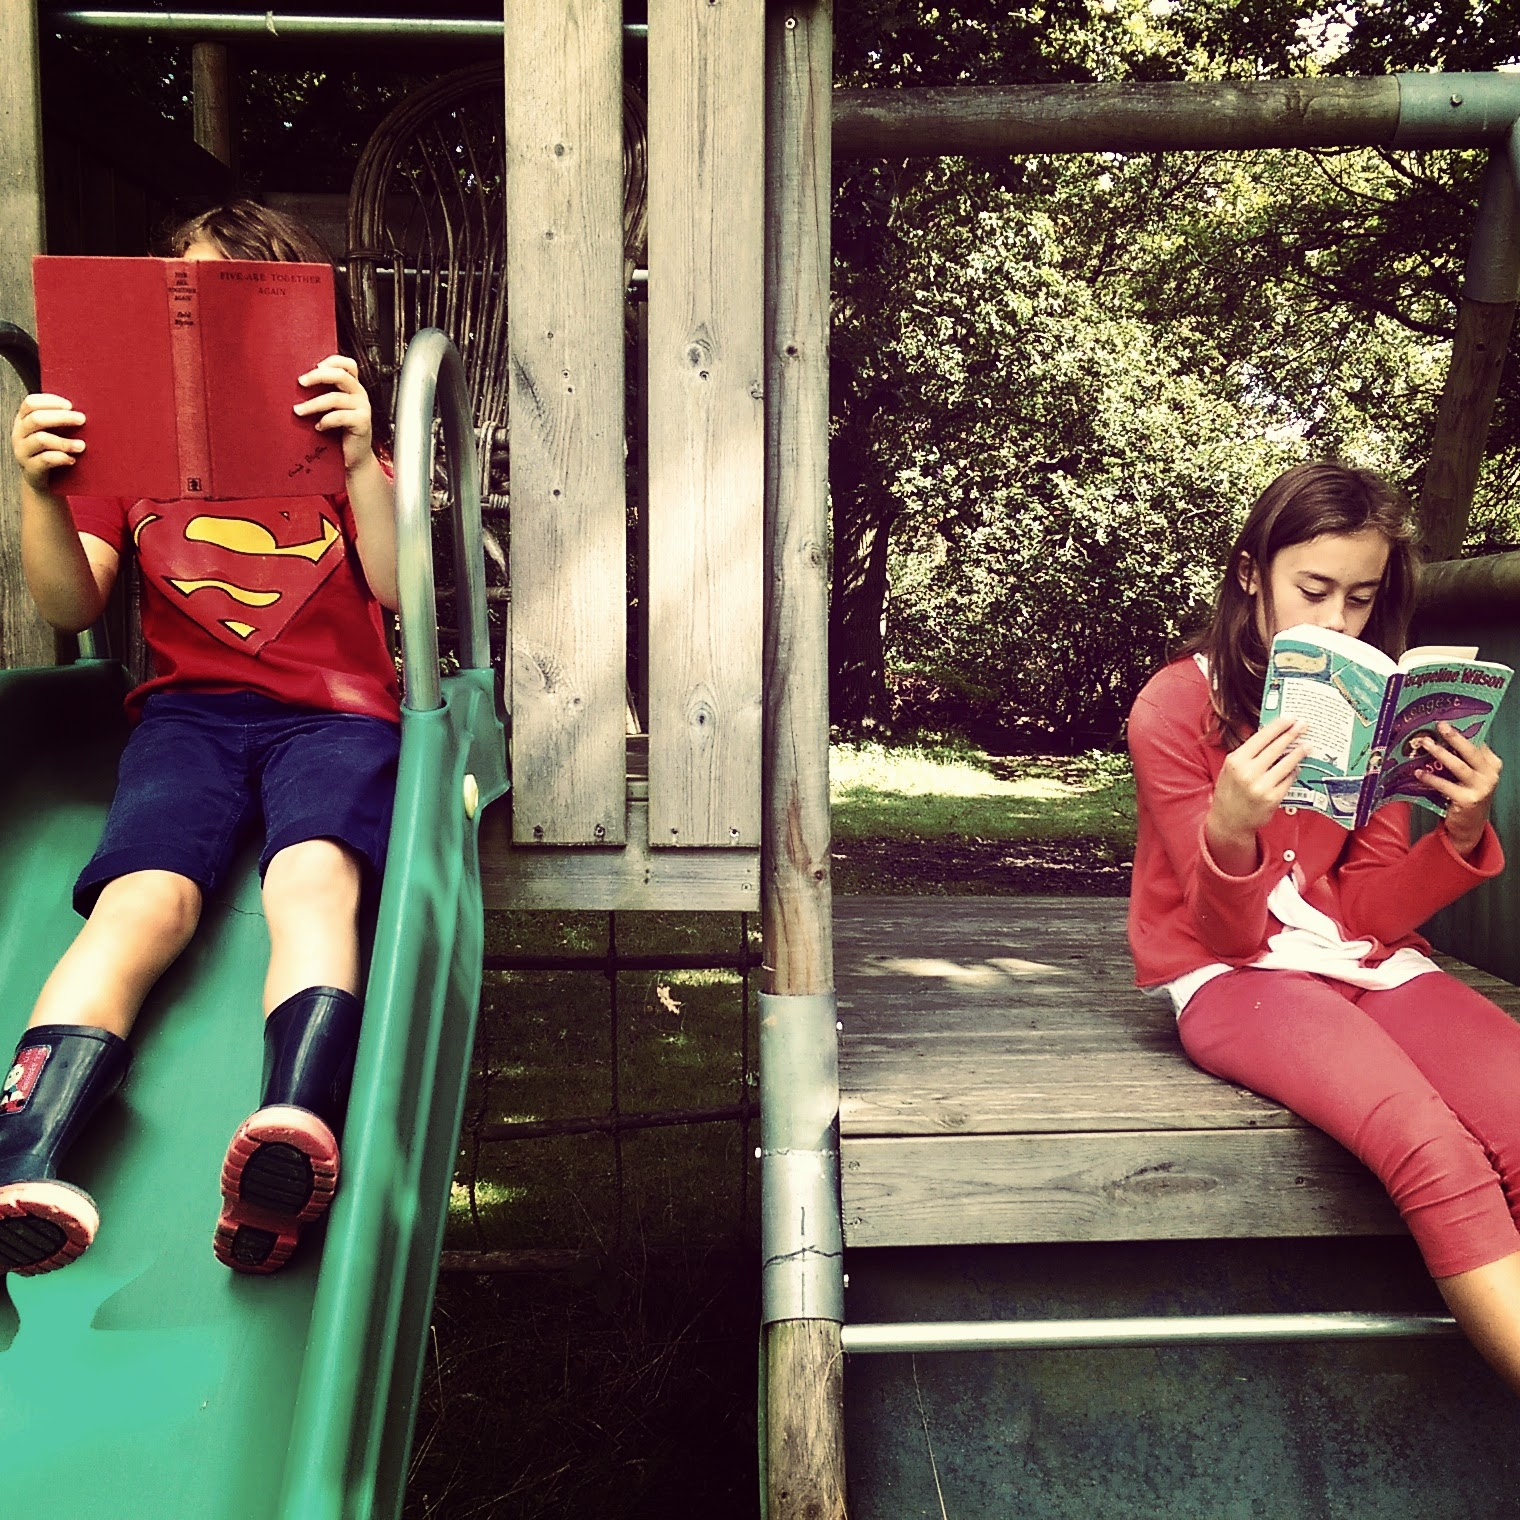 Two girls reading books on play equipment